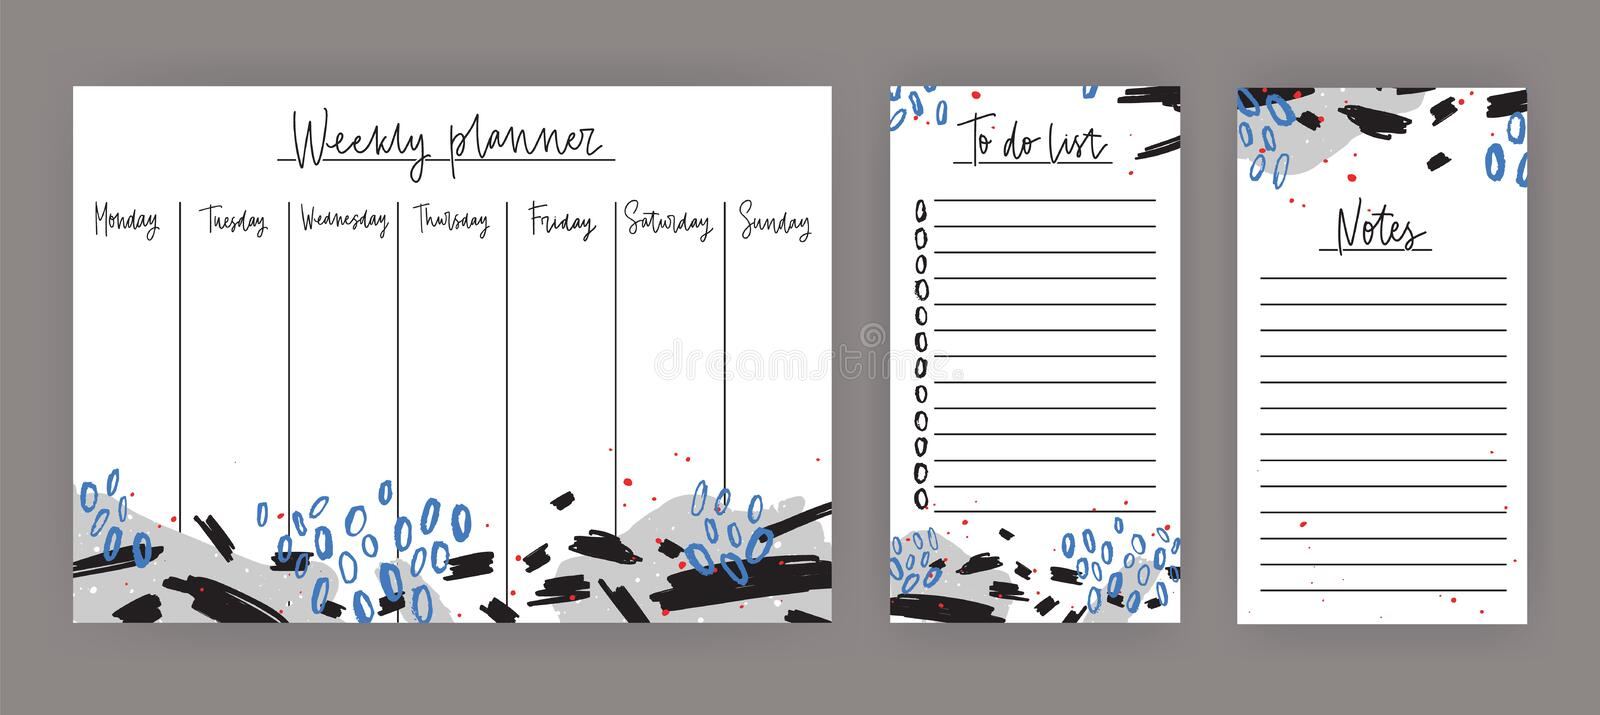 Weekly planner with weekdays sheet for notes and to do list download weekly planner with weekdays sheet for notes and to do list templates decorated with maxwellsz